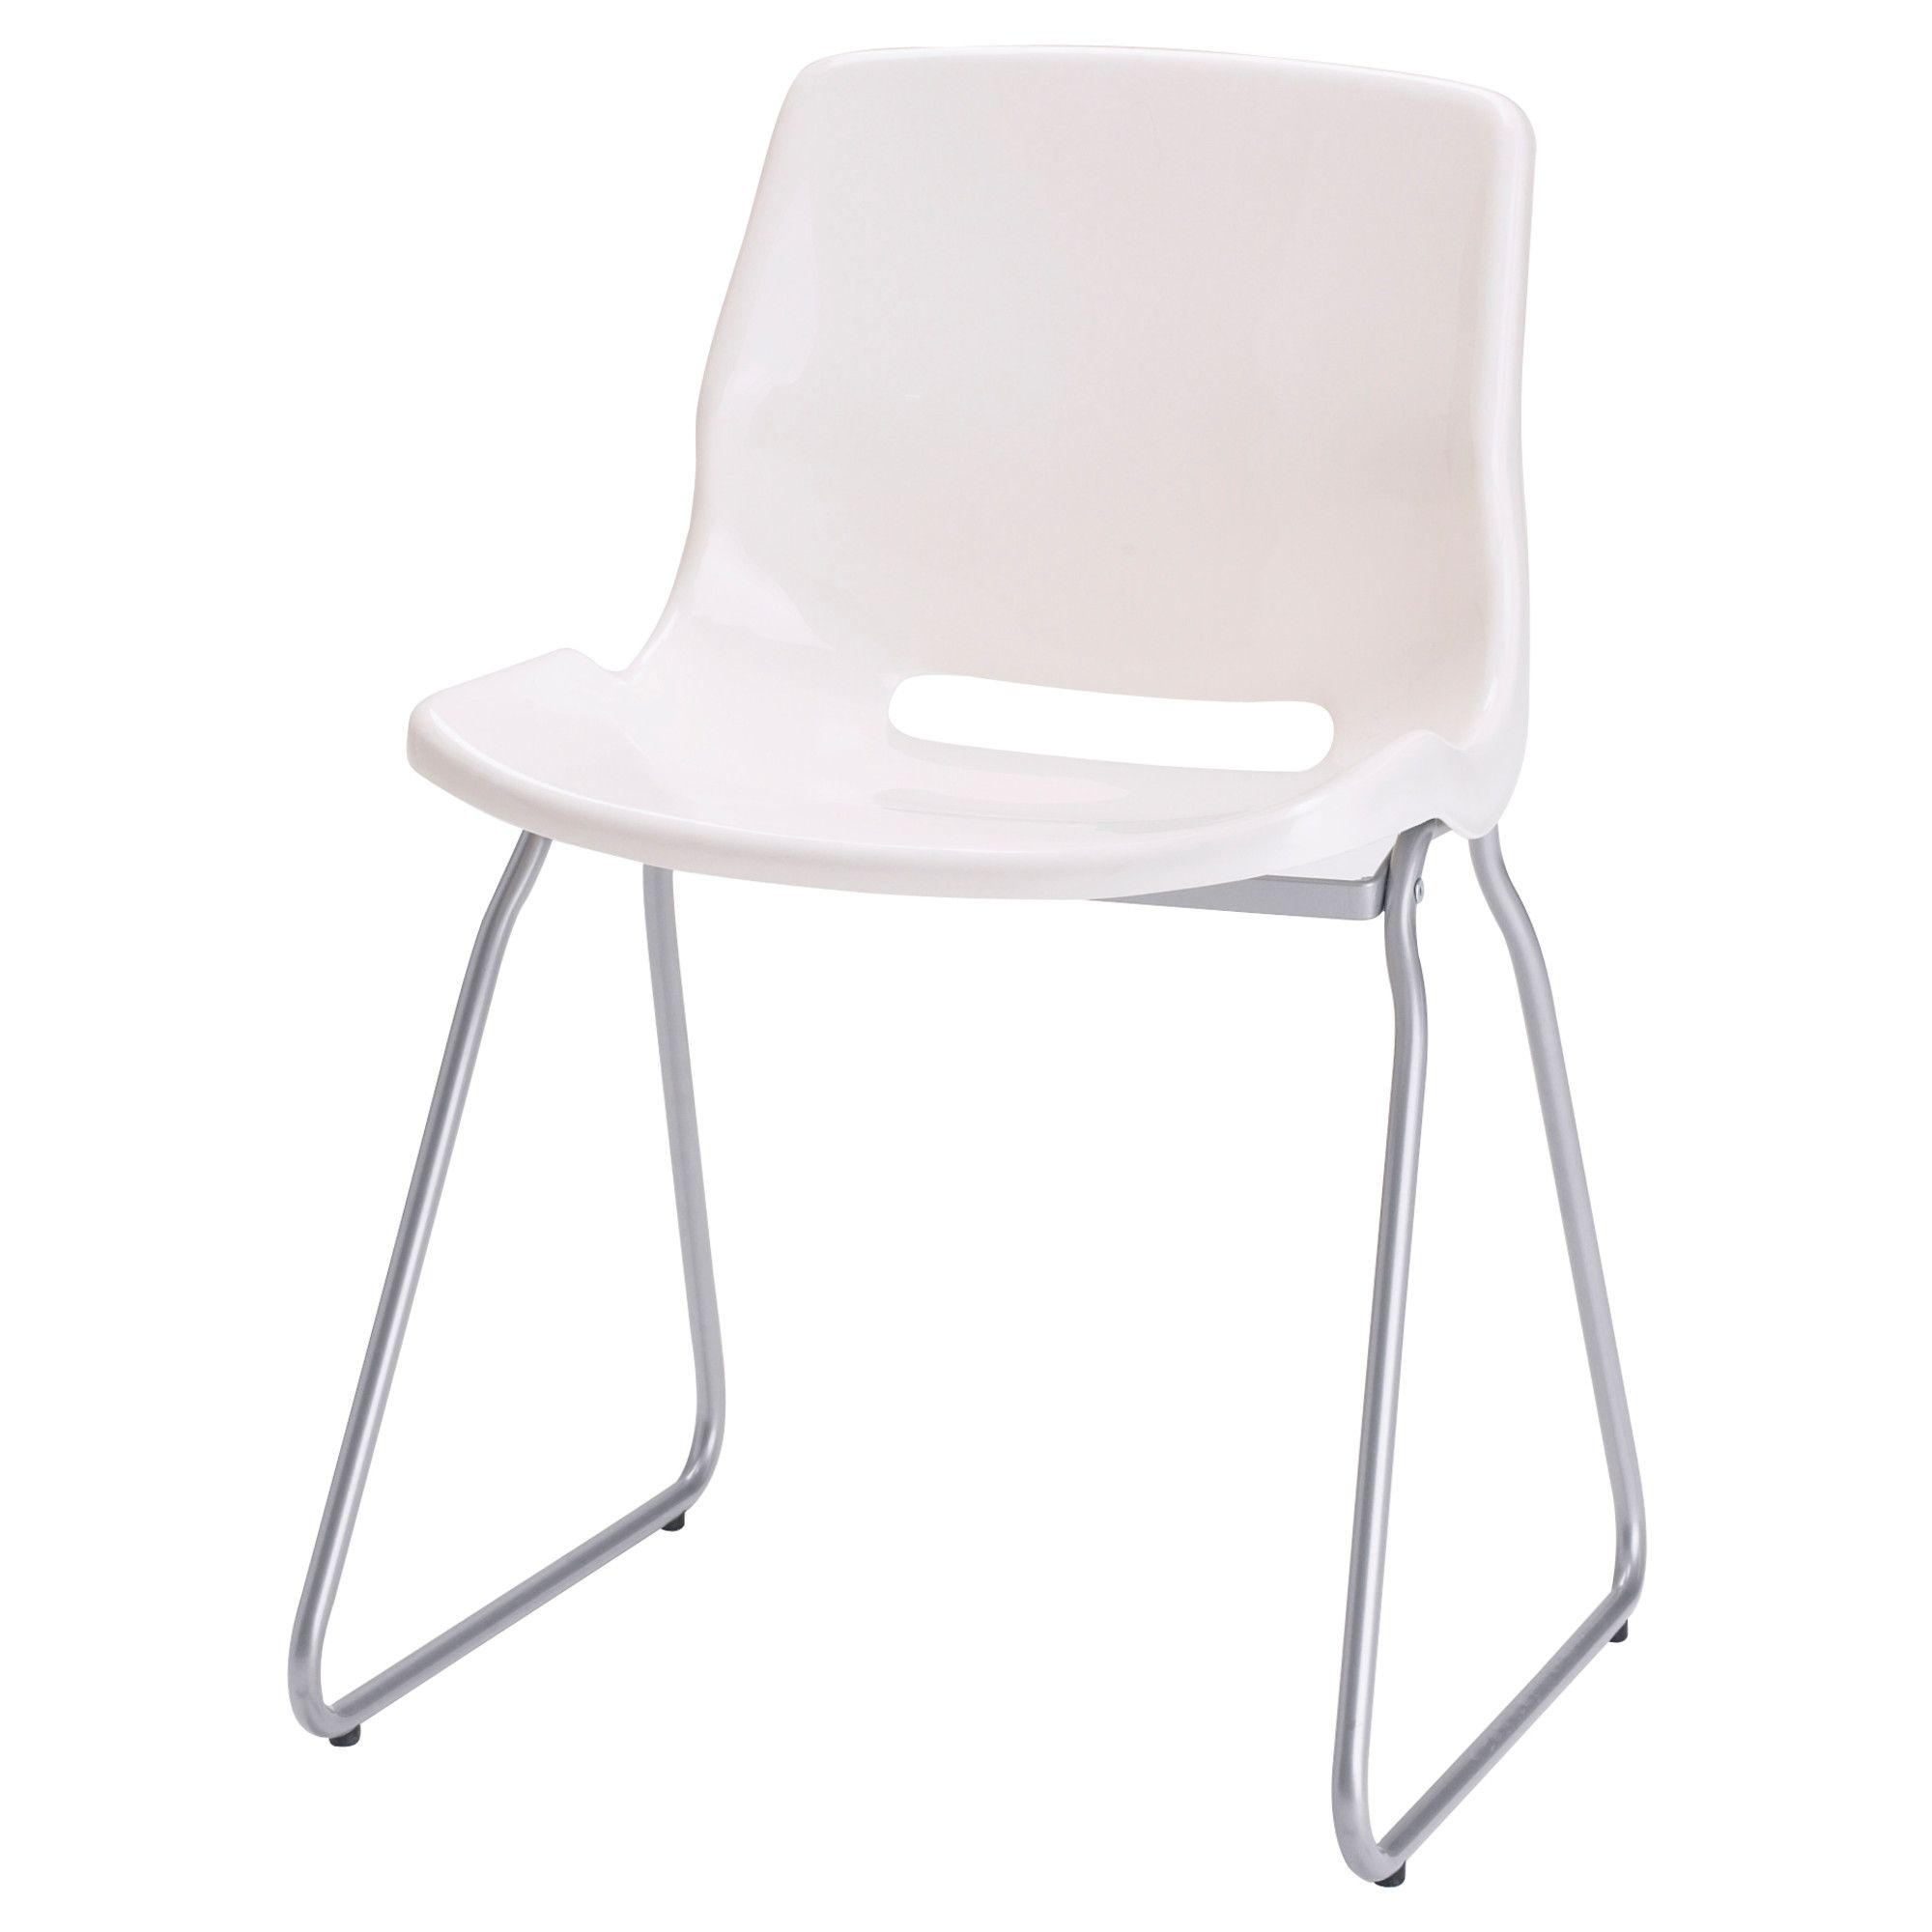 Sedia Vilmar Ikea Nera 17 99 Visitor Chair Snille Visitor Chair White Ikea Office